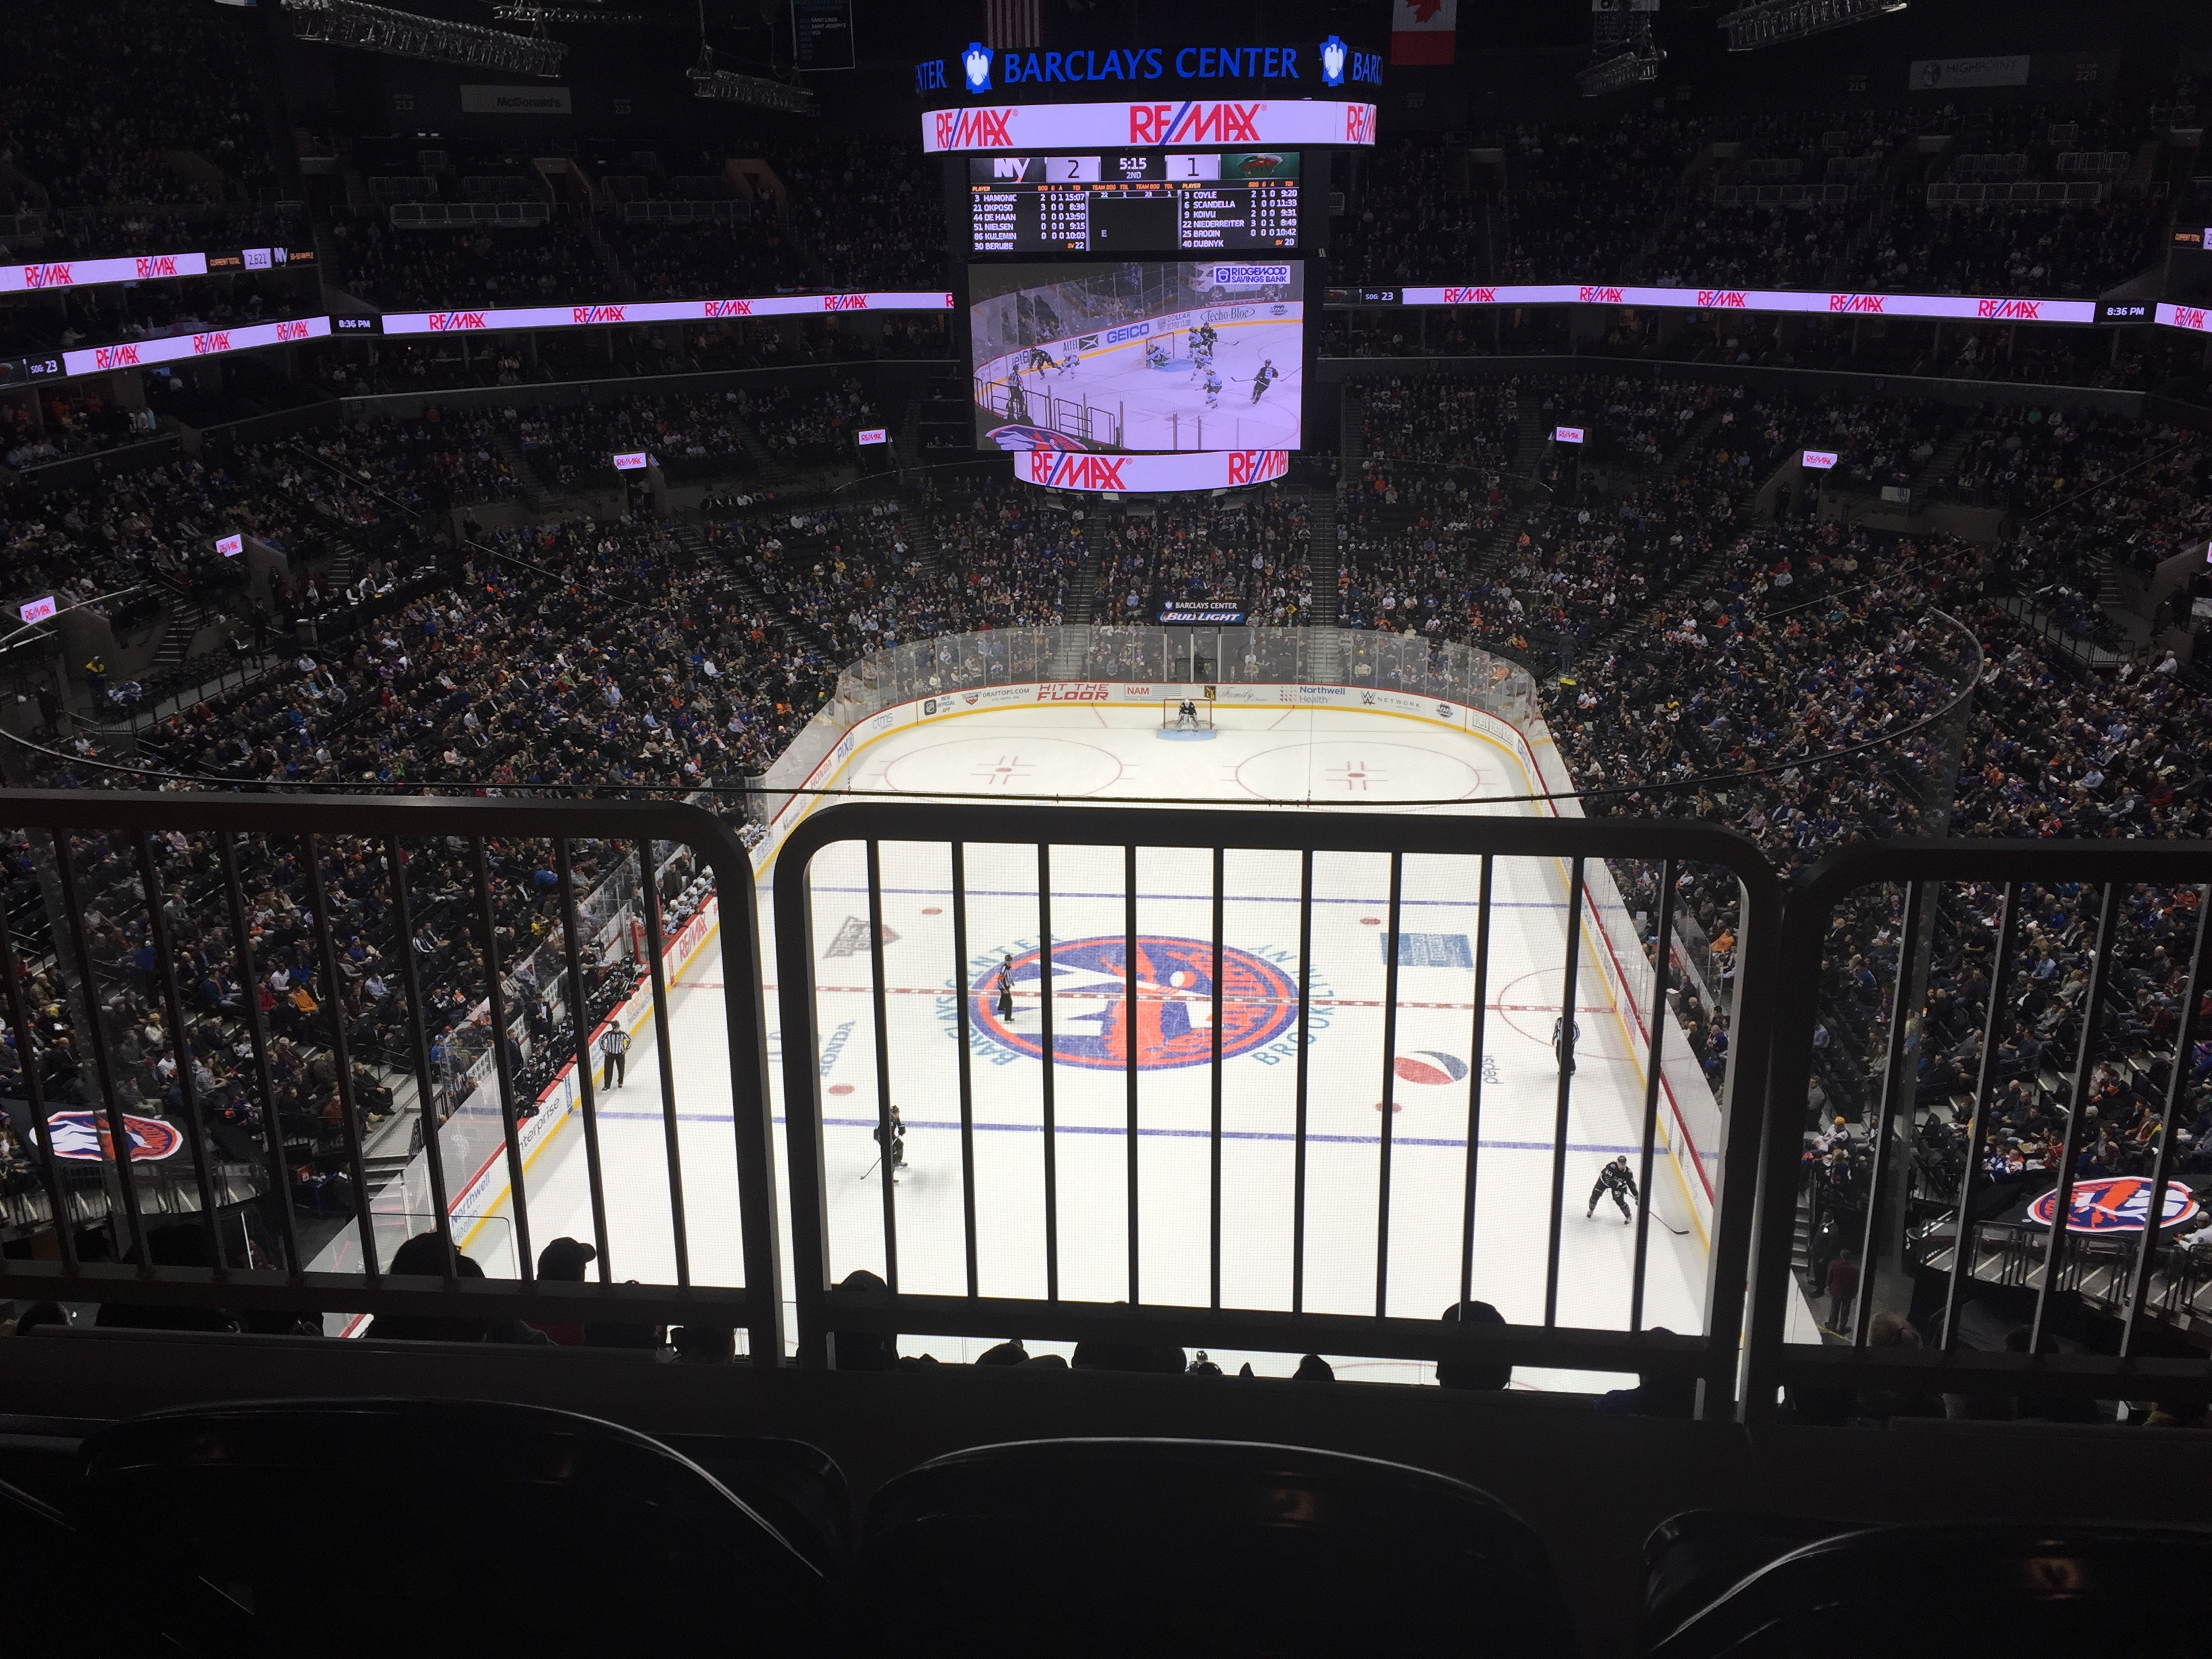 Barclays Center view